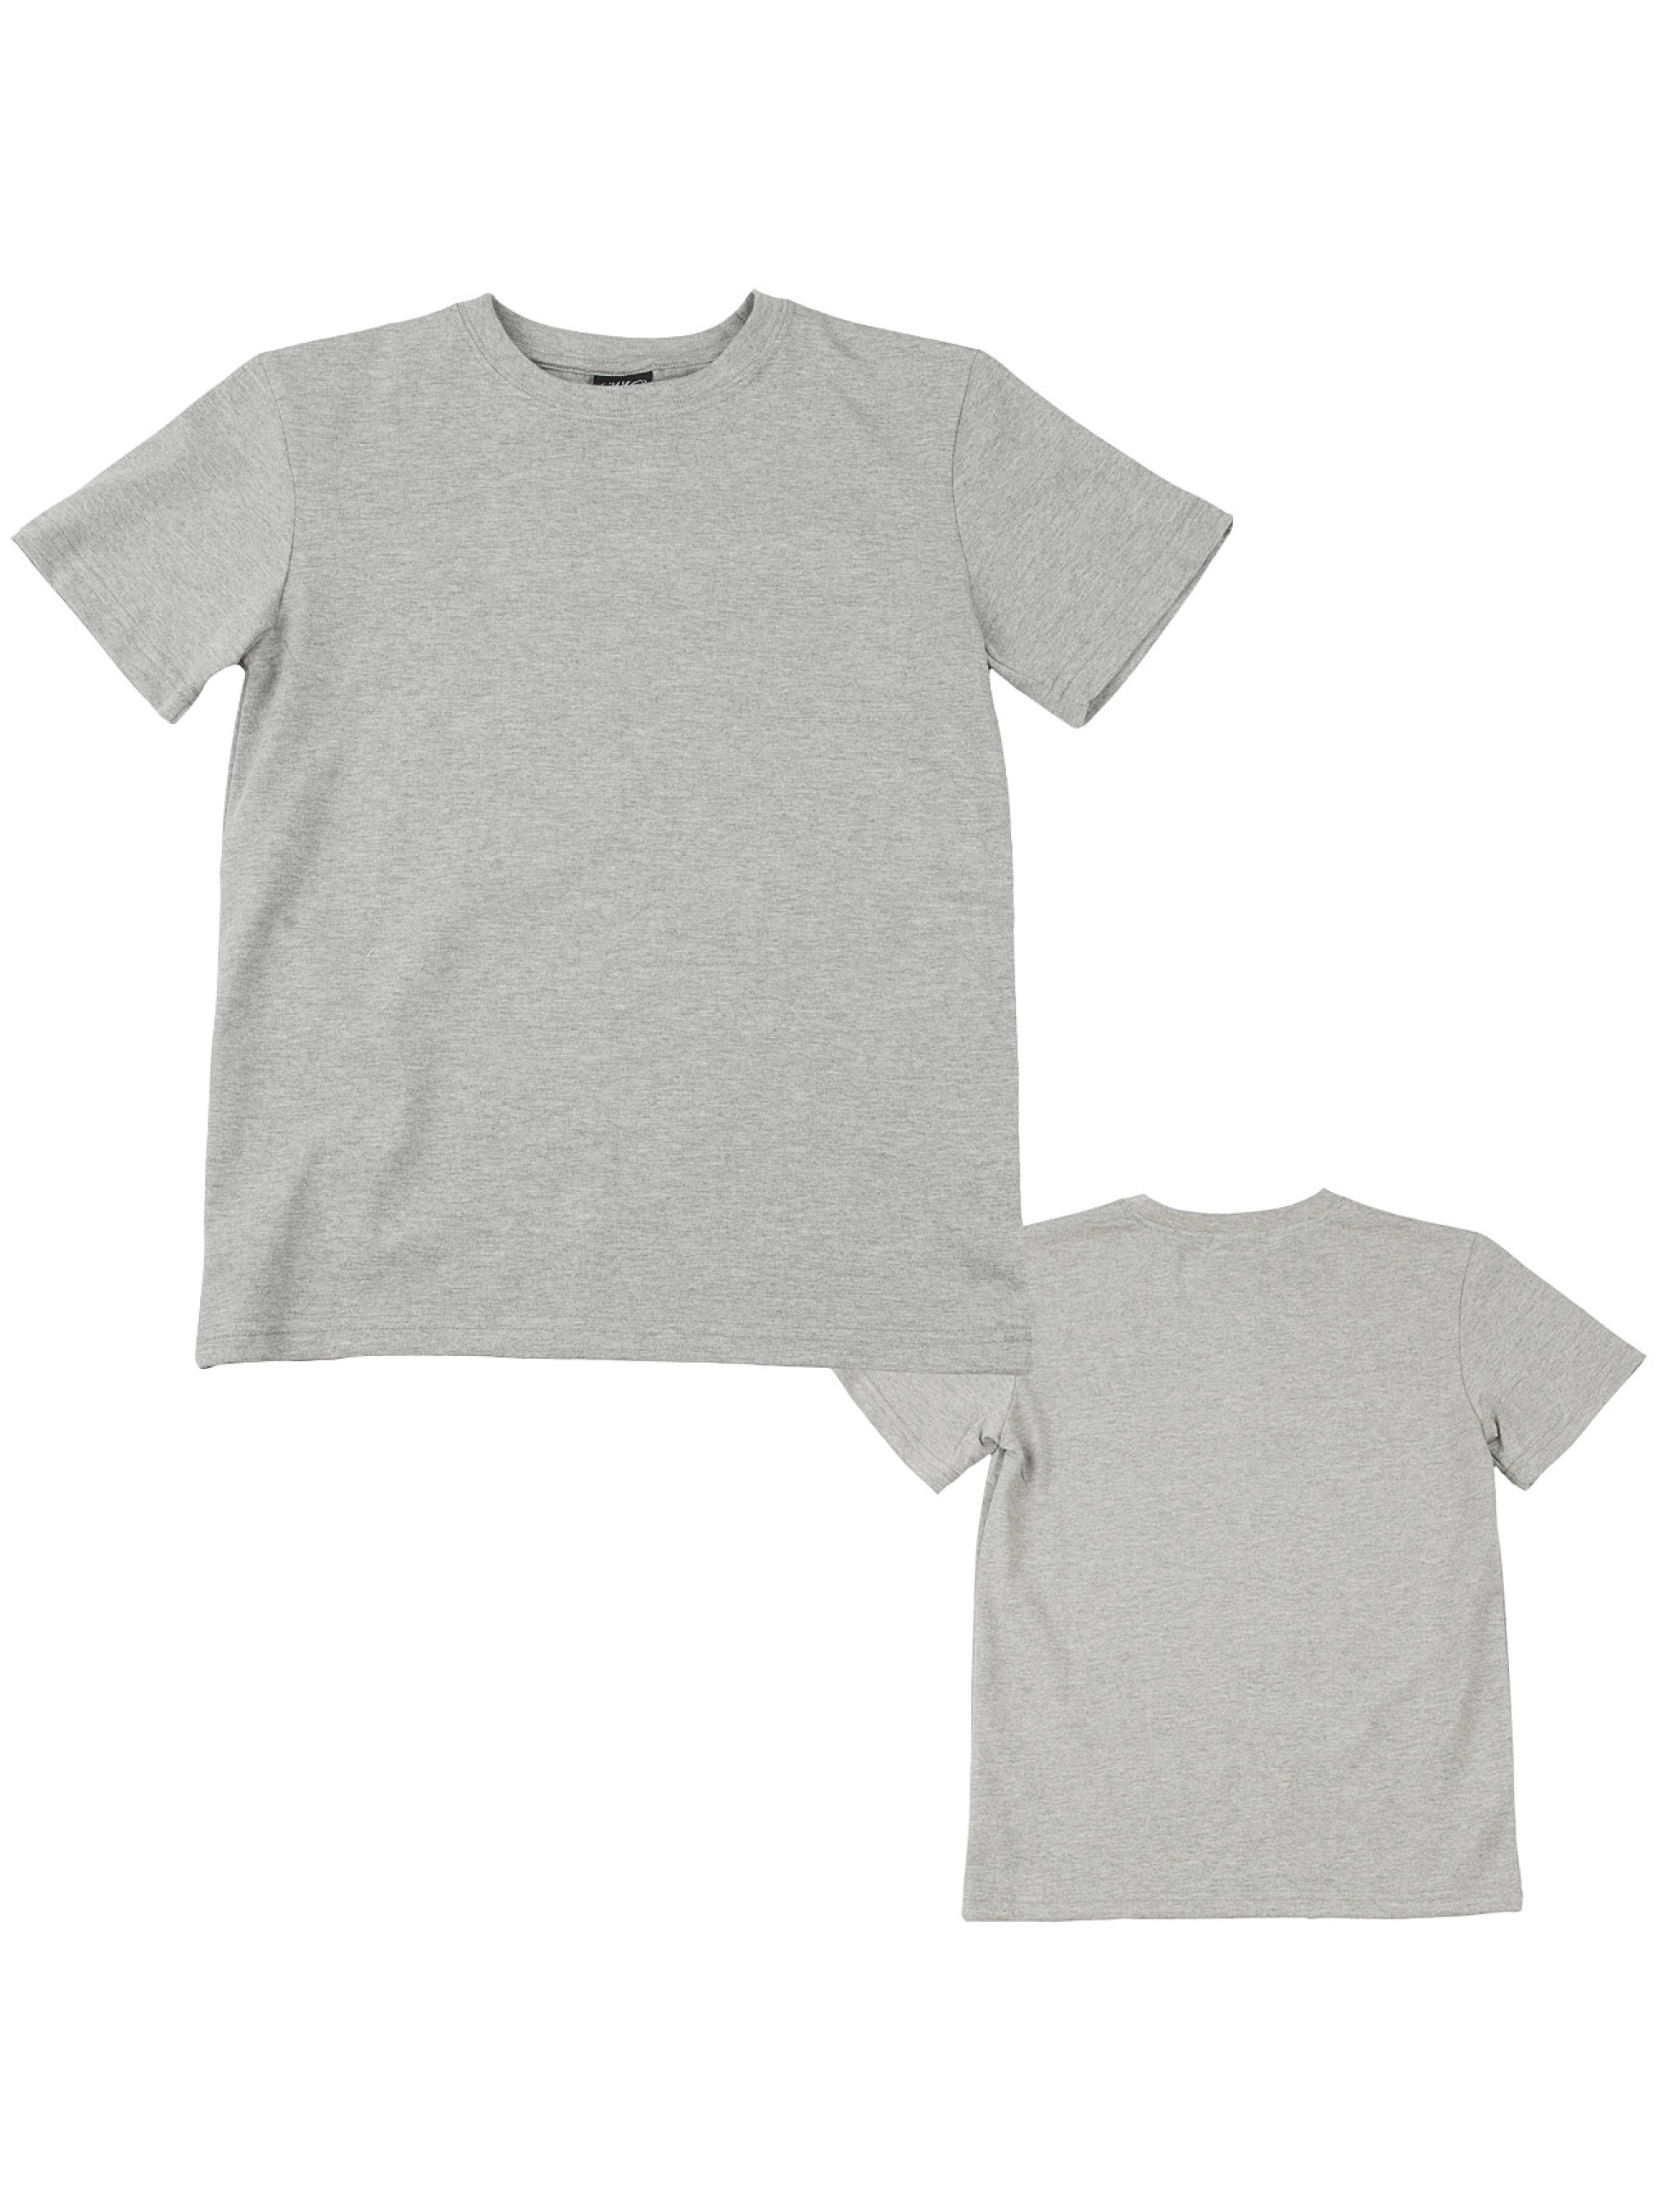 Urban Classics T-Shirt Kids Basic grau